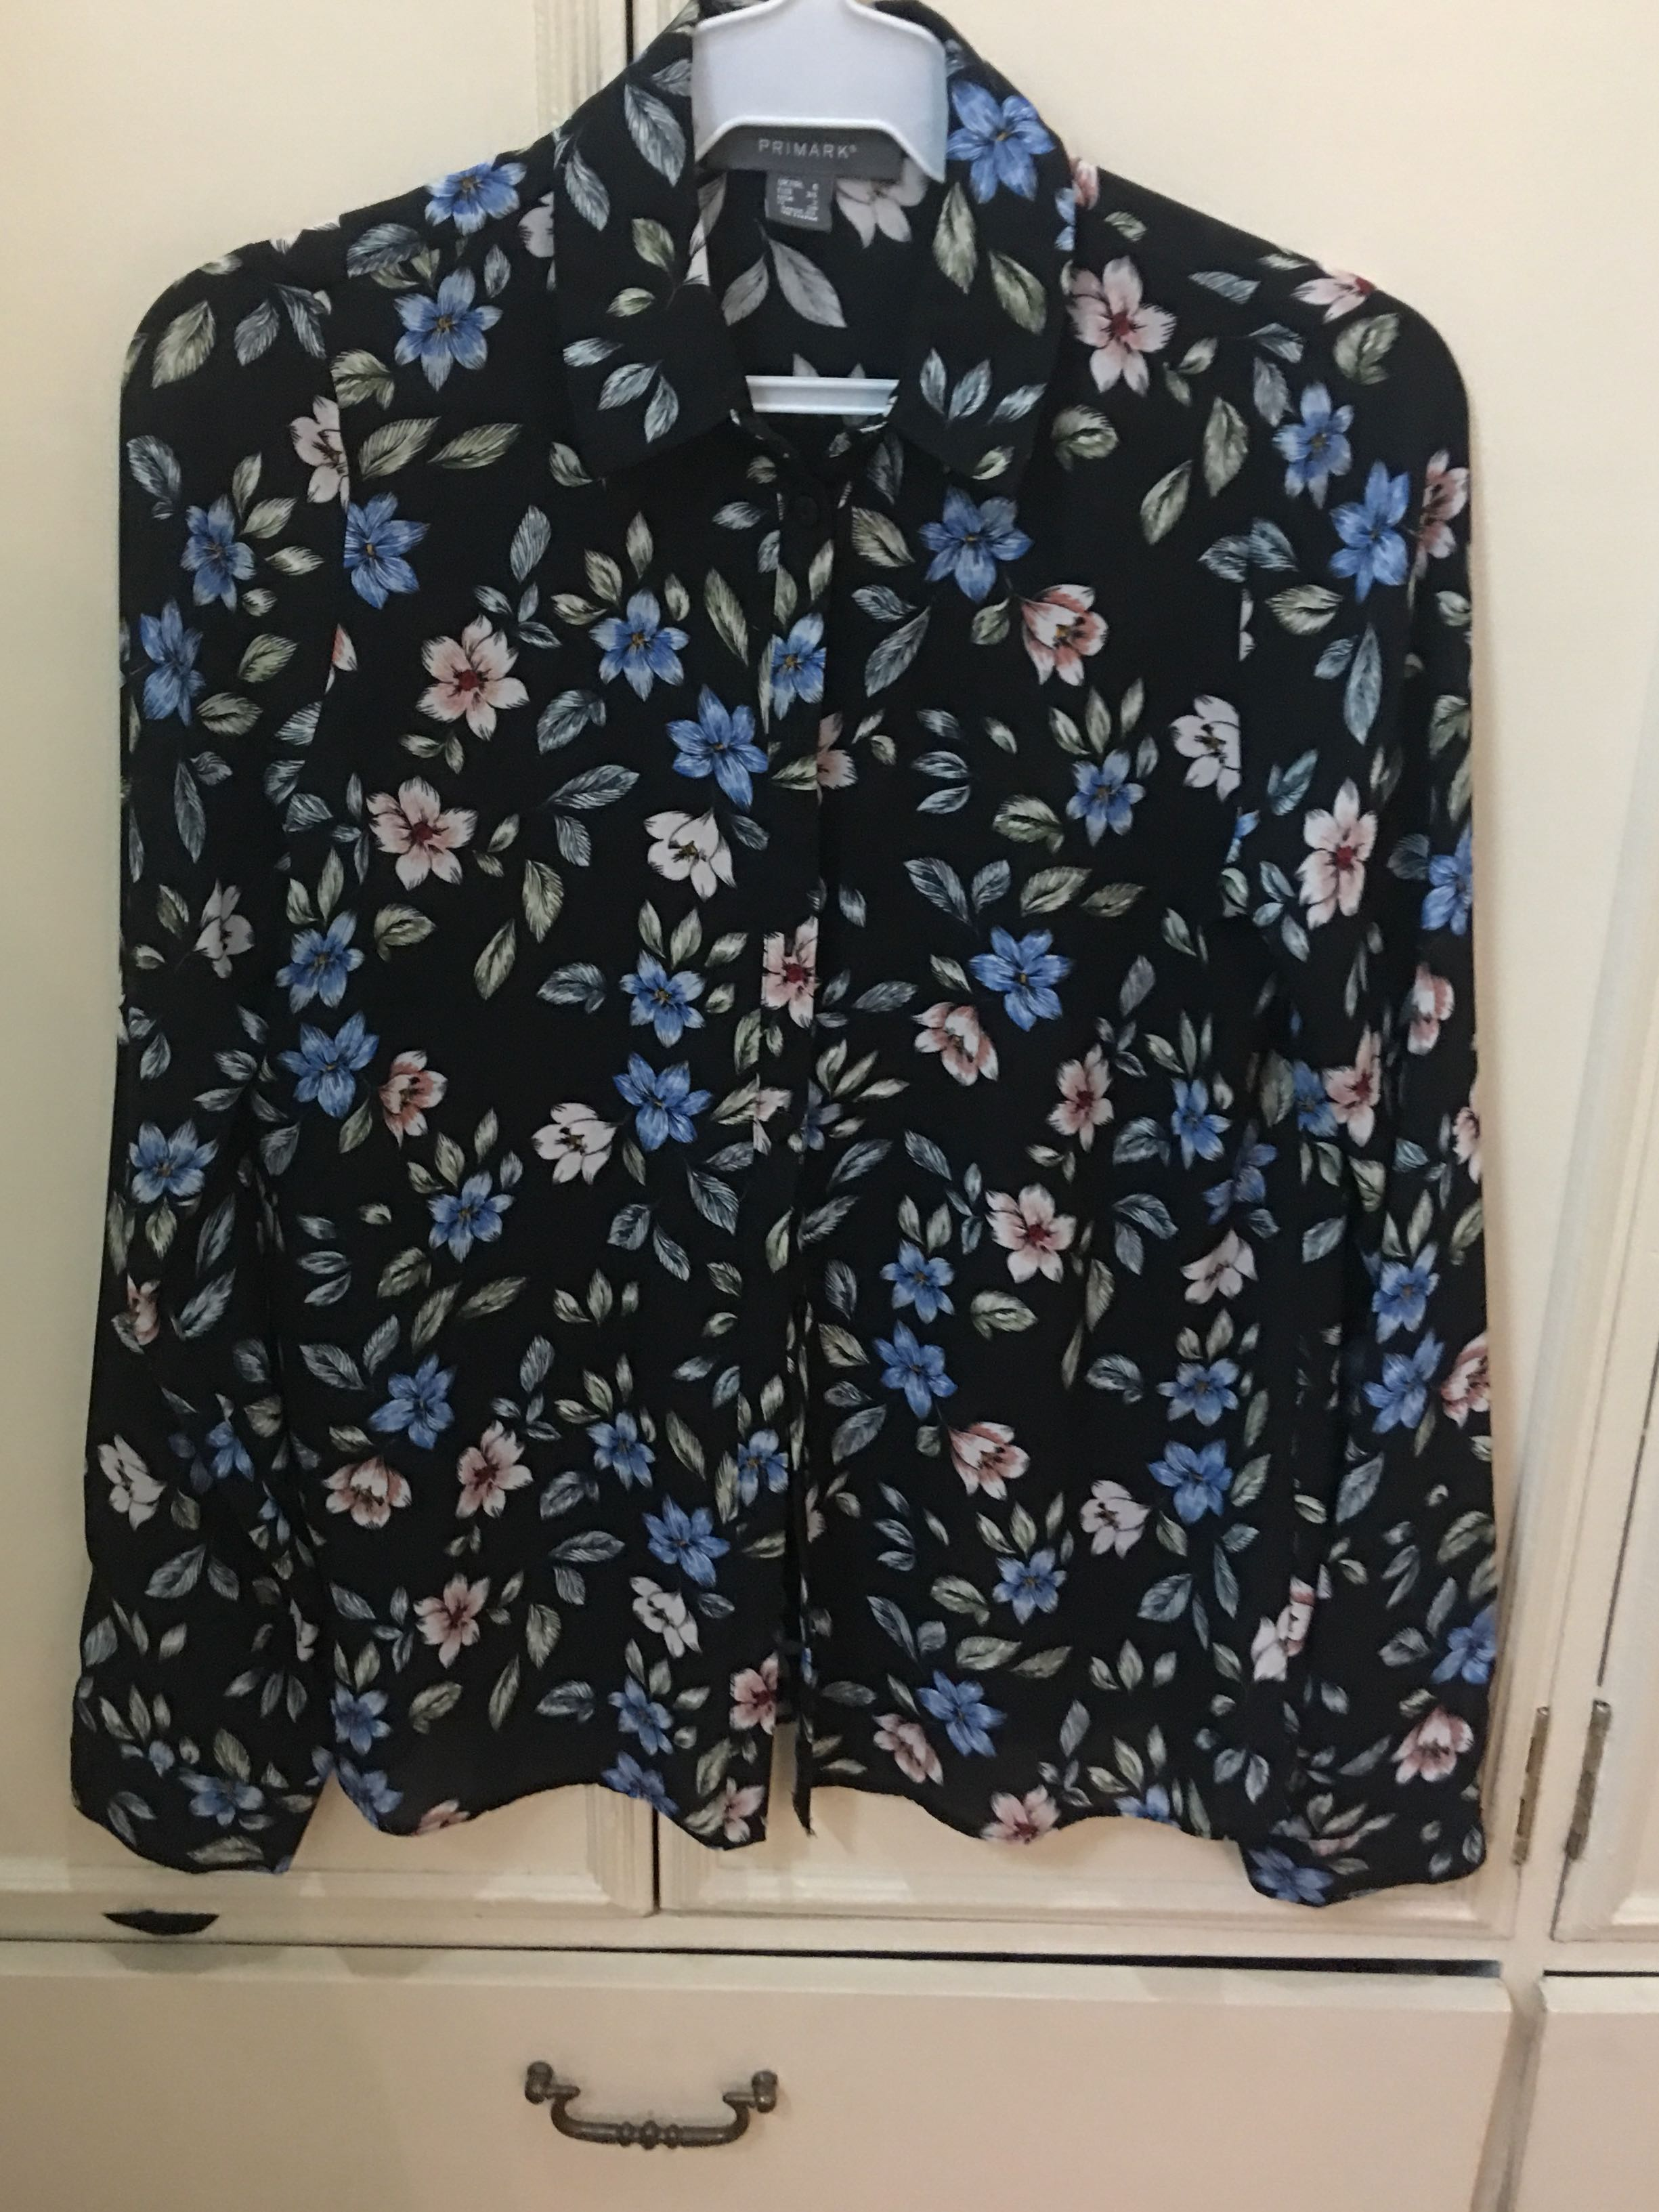 3c29df648c889d Primark Floral Blouse, Women's Fashion, Clothes, Tops on Carousell